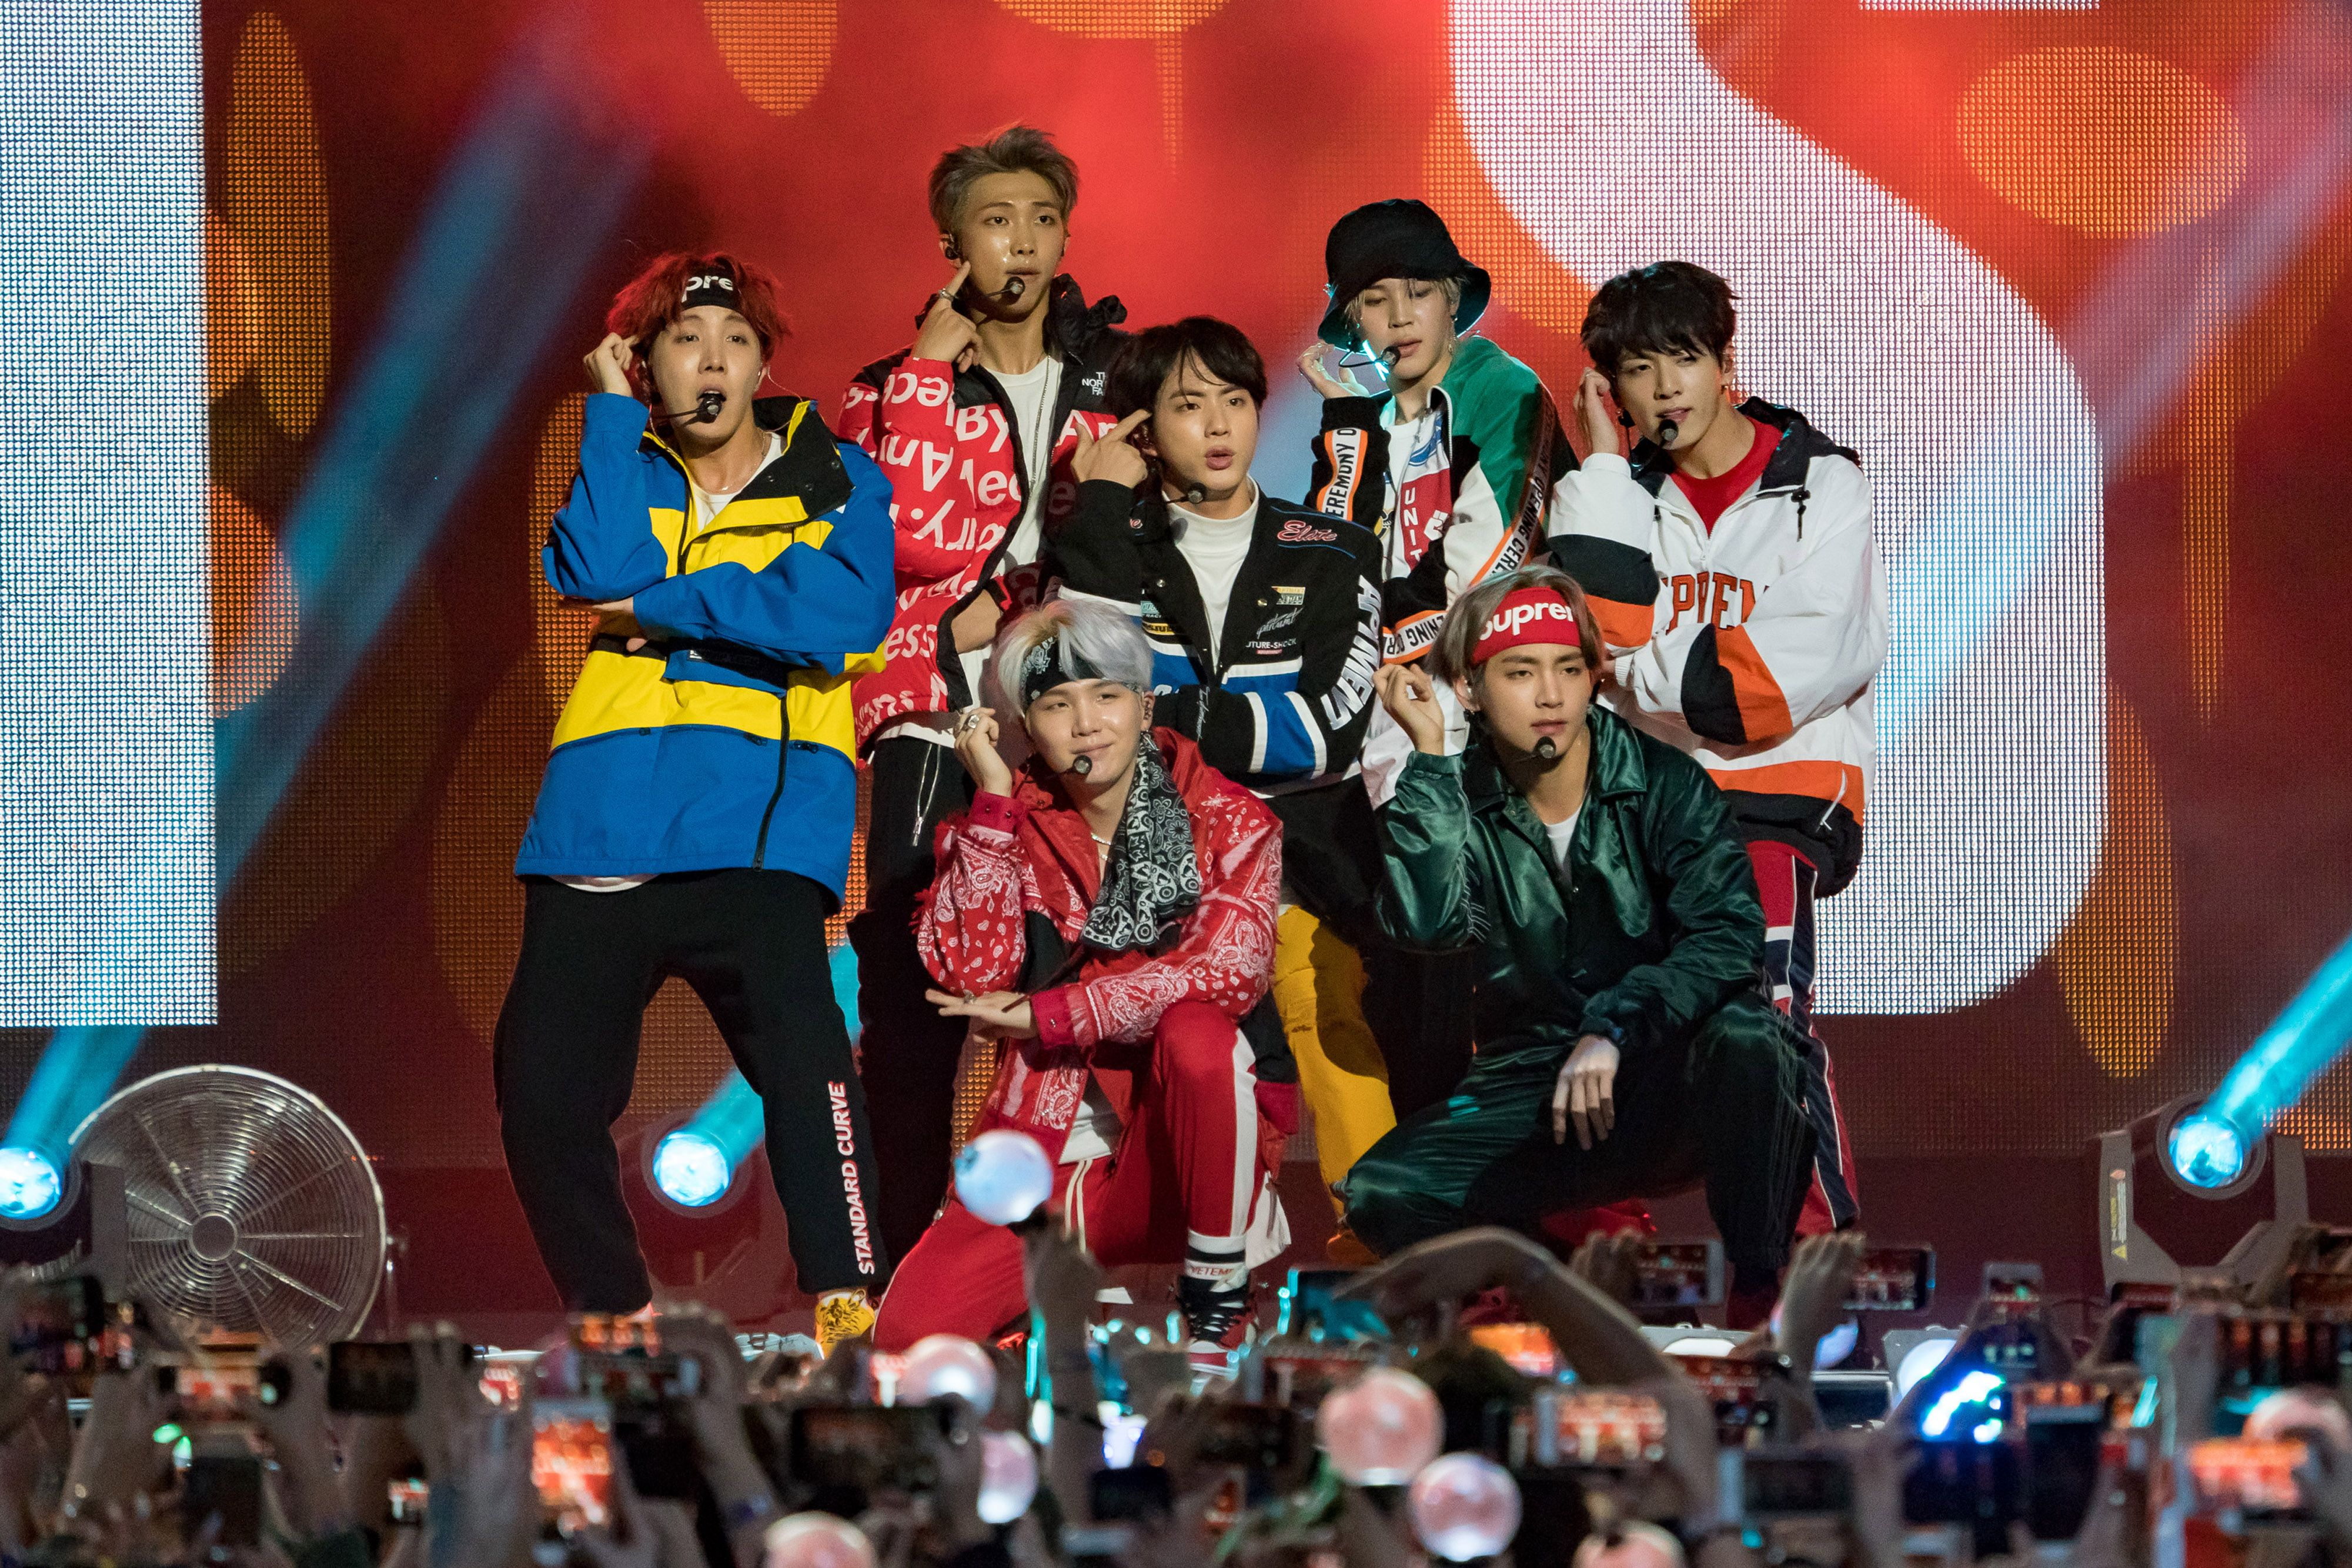 Why BTS Is a Bigger Deal Than 'Good Morning America' Fans